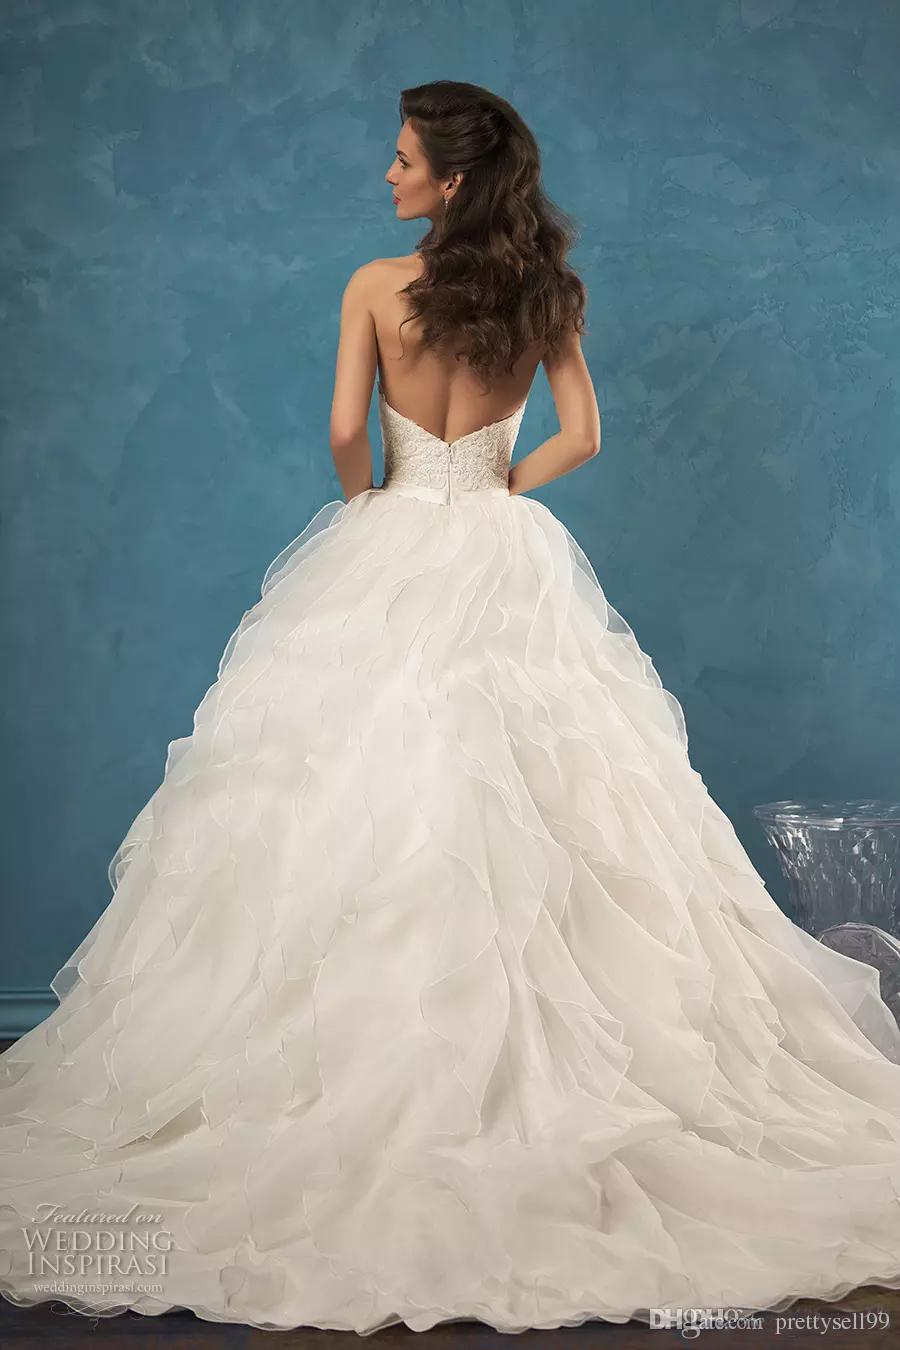 New Amelia Sposa Sexy Lace Wedding Dresses 2018 Sweetheart Strapless Beautifully Organza A-Line Custom Made Wedding Bridal Gowns